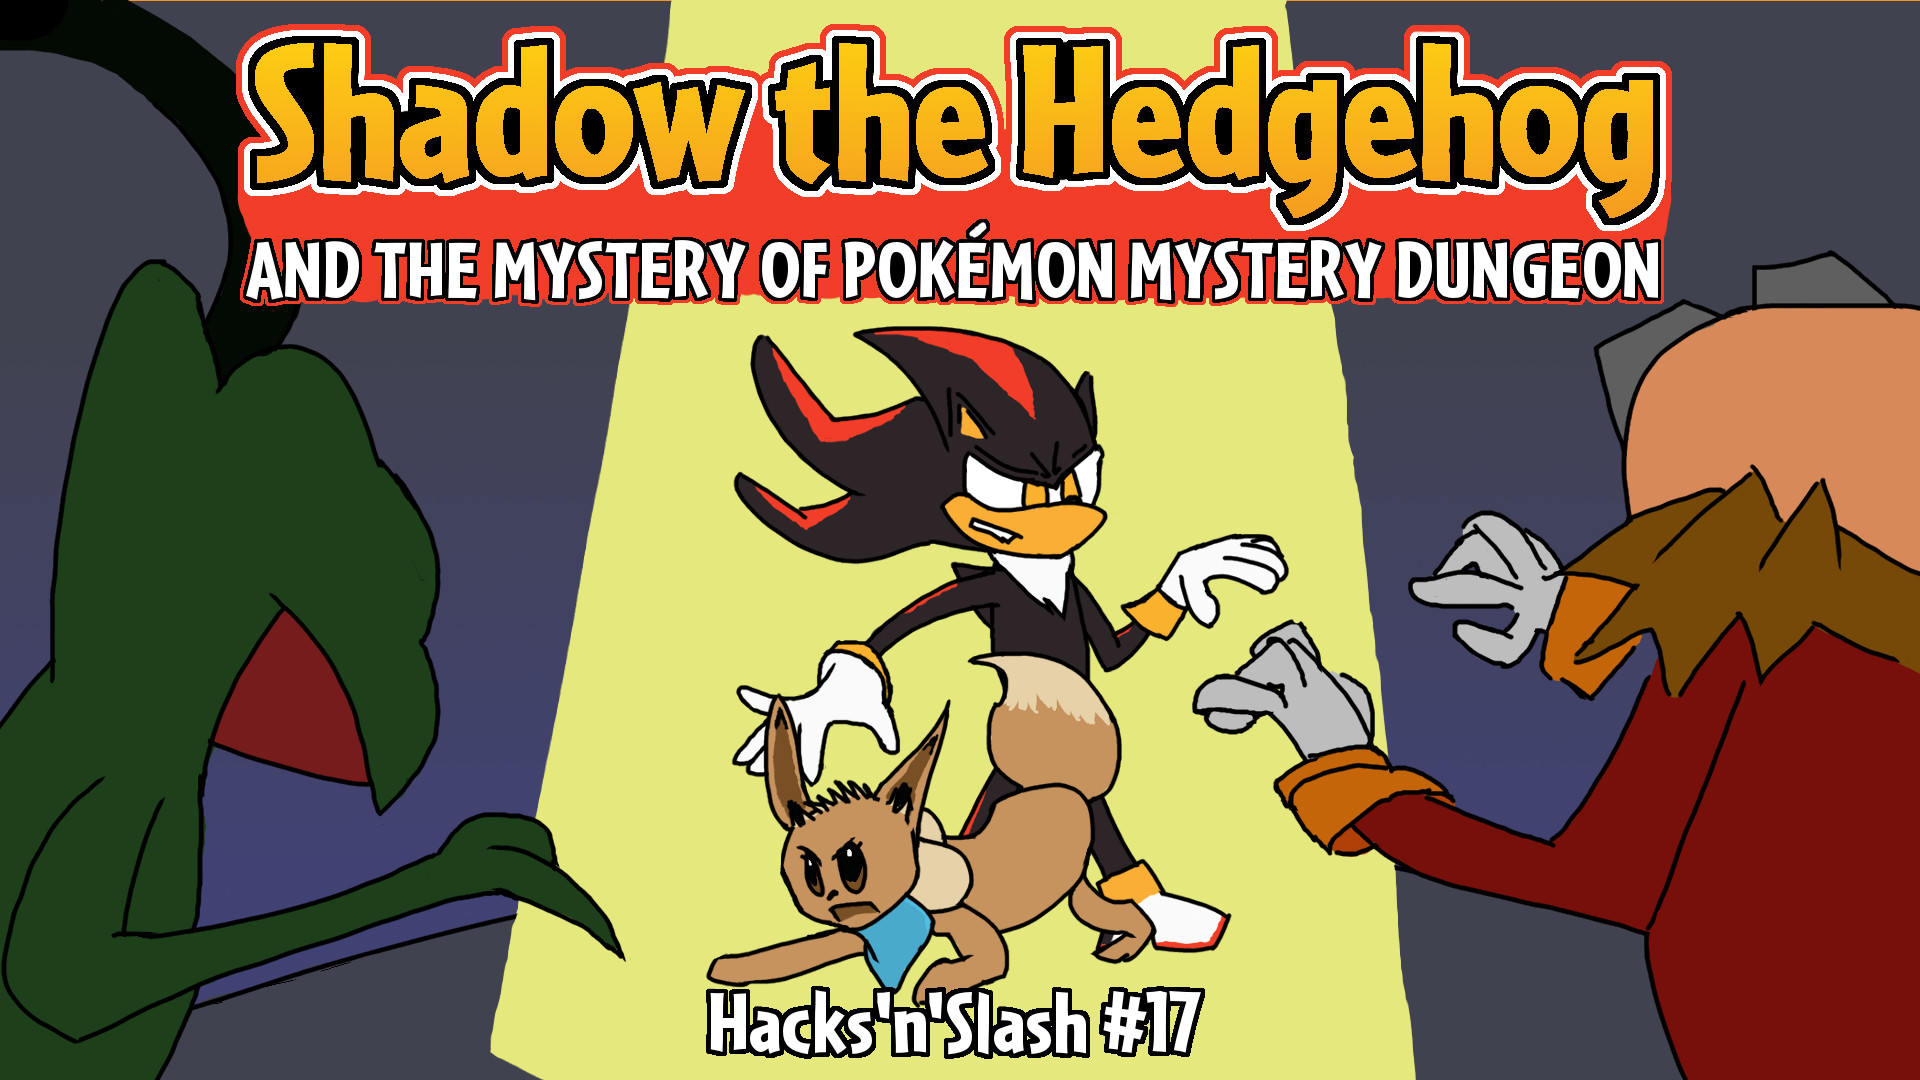 Hacks'n'Slash #17: Shadow the Hedgehog and the Mystery of